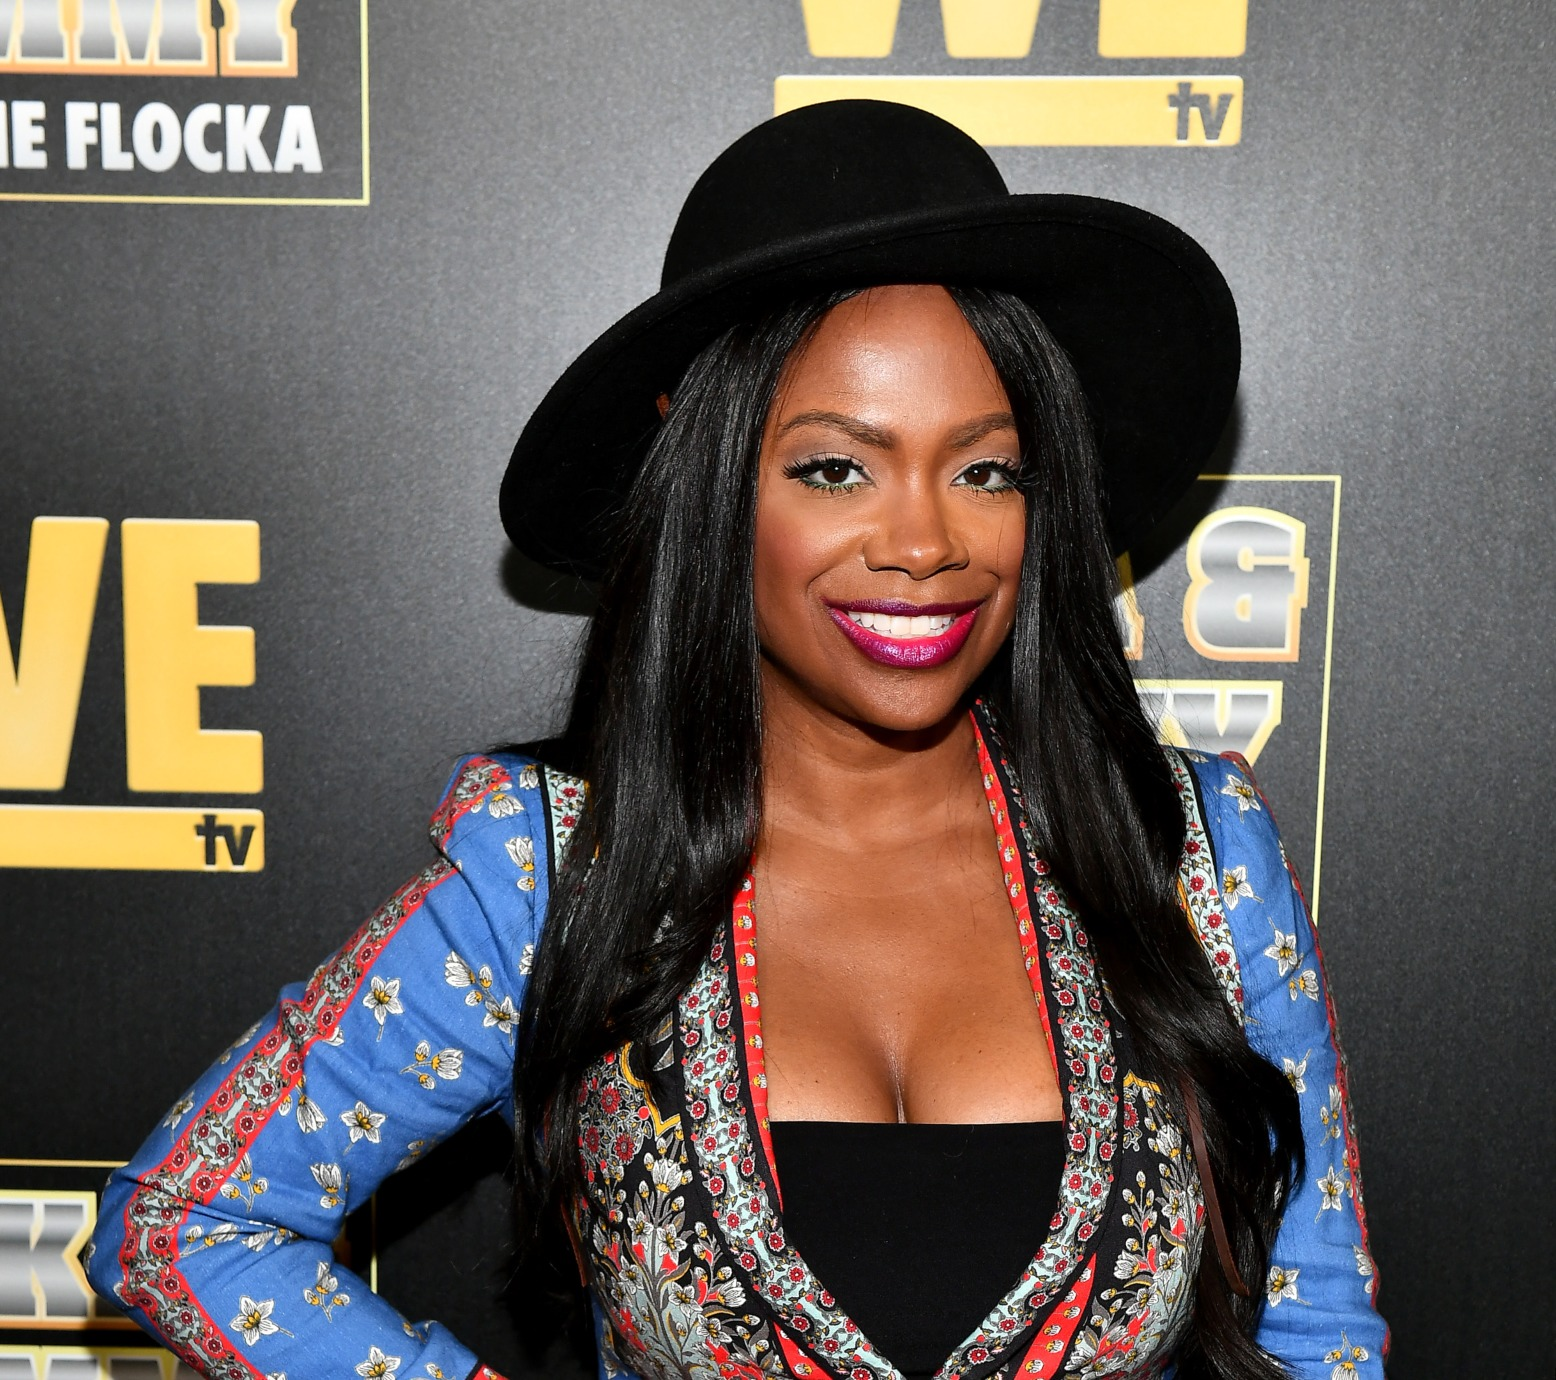 Kandi Burruss Drops Her Clothes And Flaunts Fire Red Hair For Some Racy Photos In Bed - See The Footage And Pics